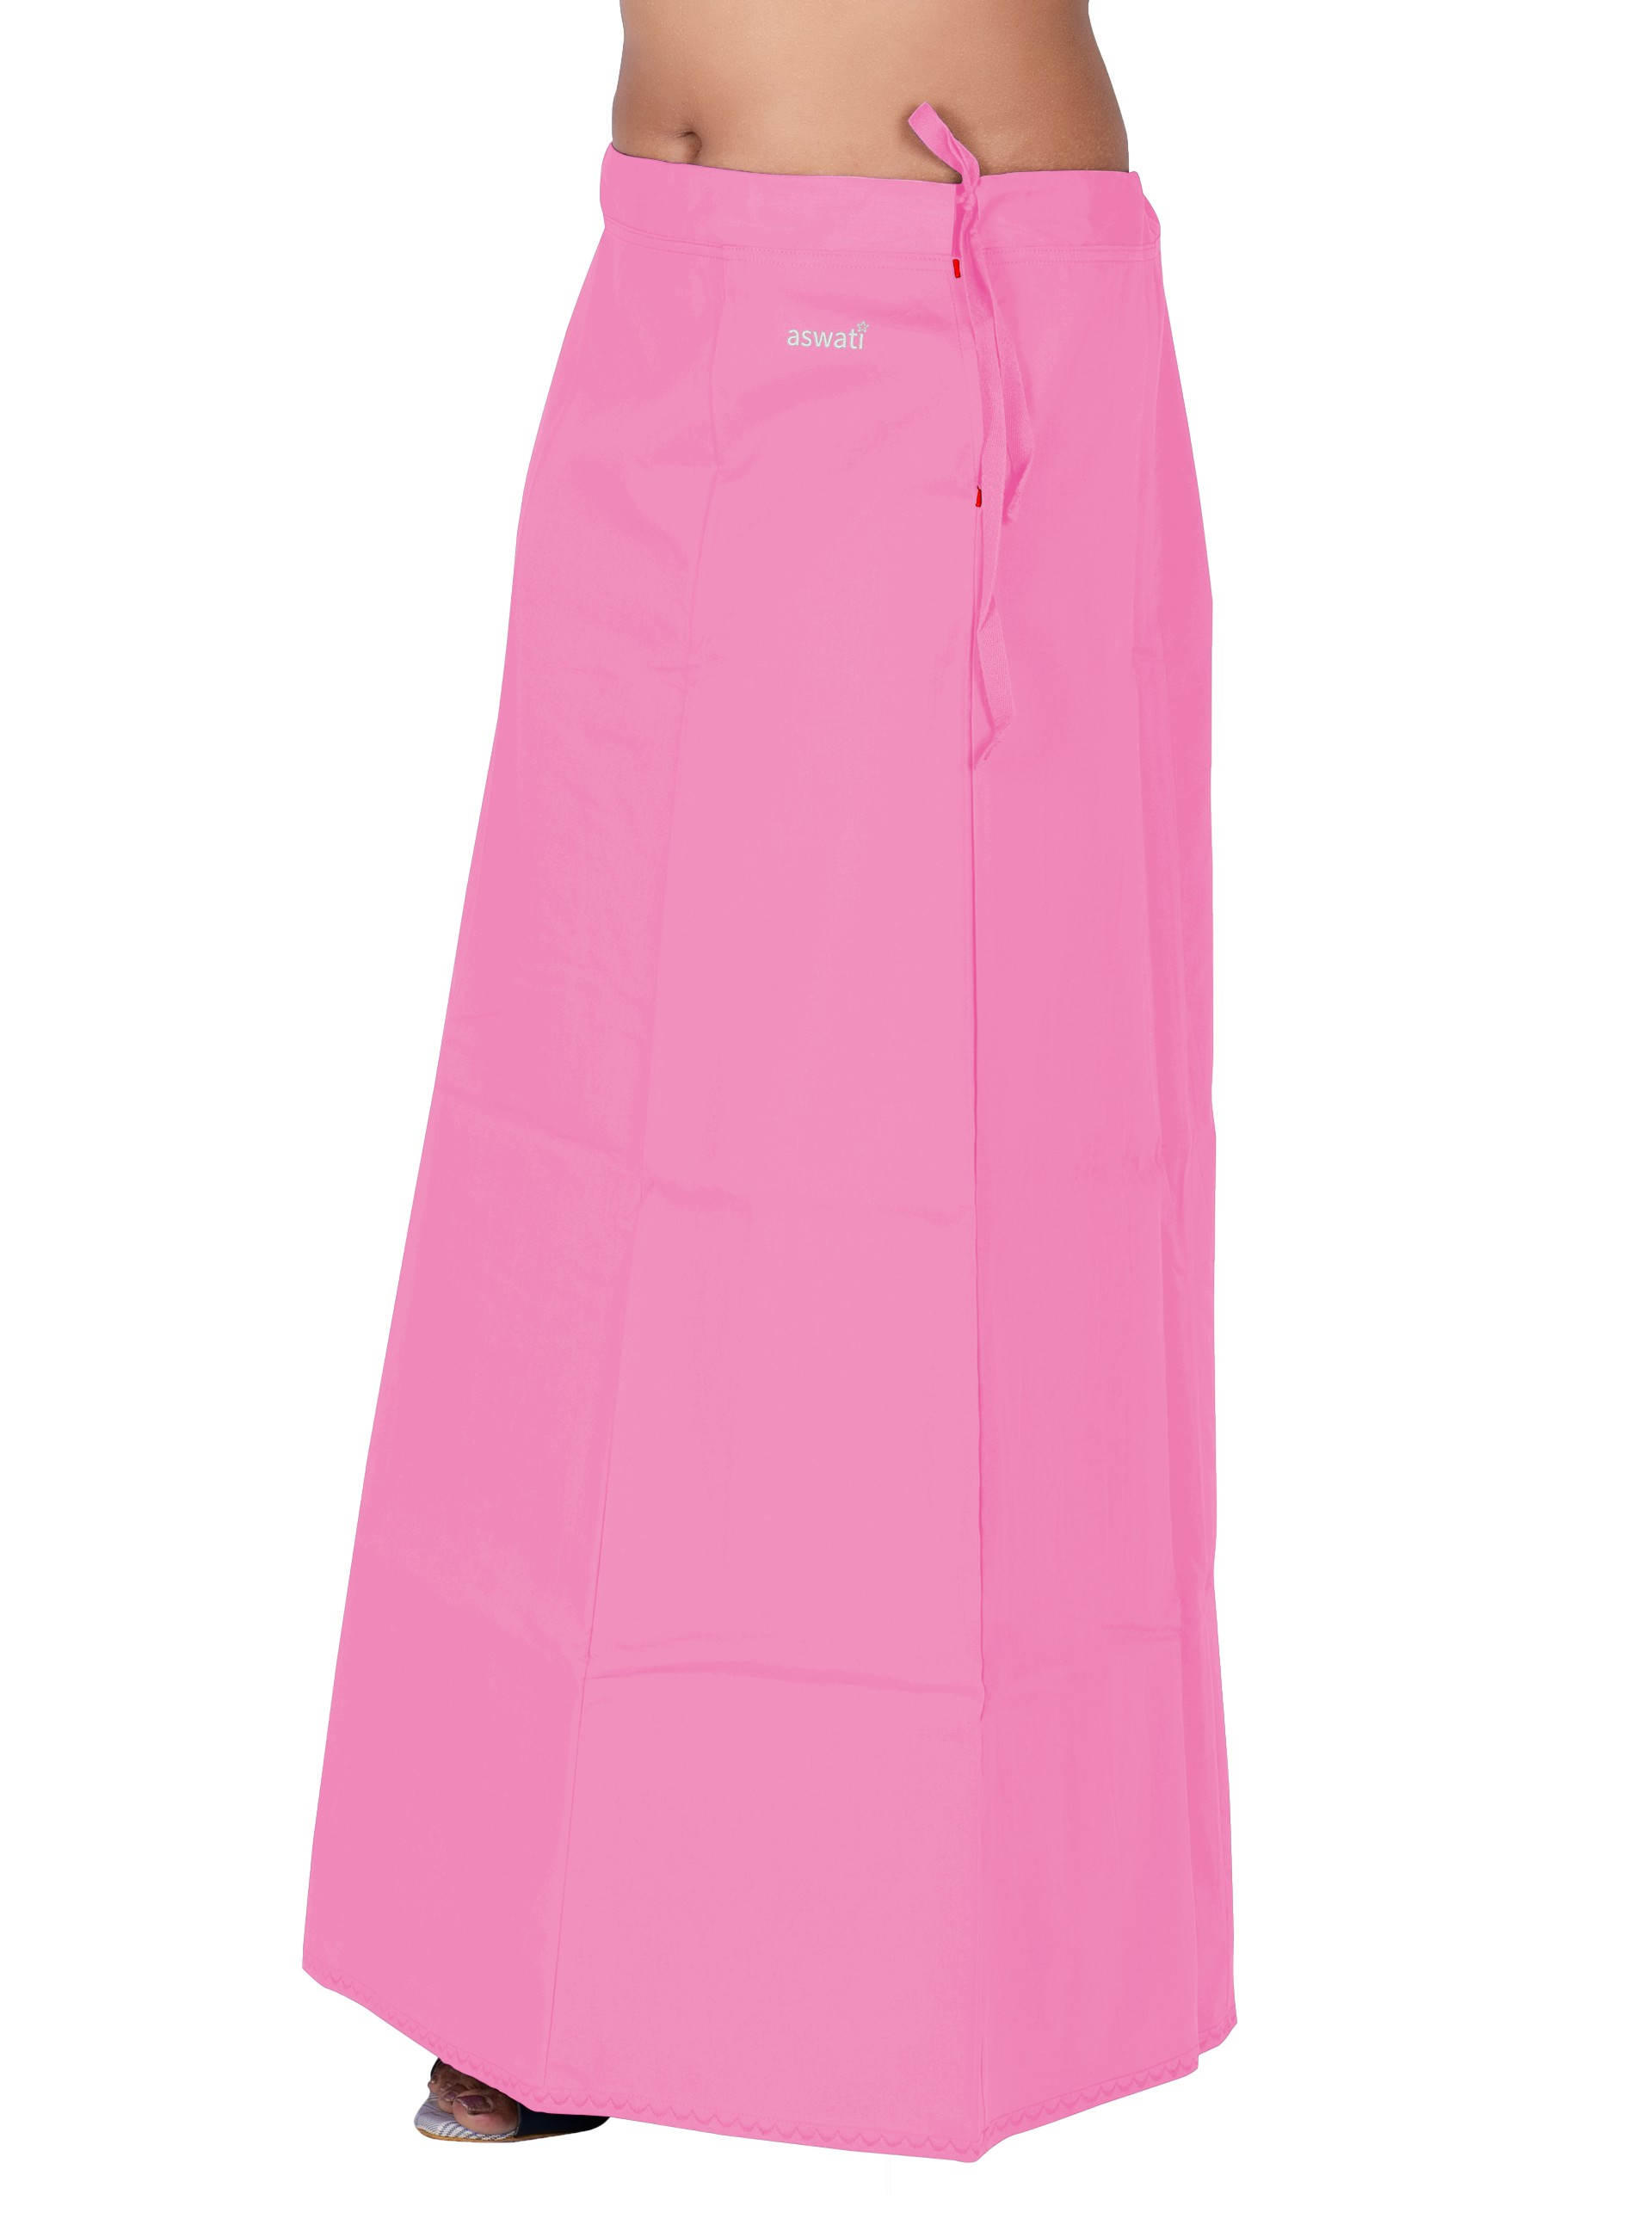 Light Pink - Aswati Premium Inskirt (8 PART)